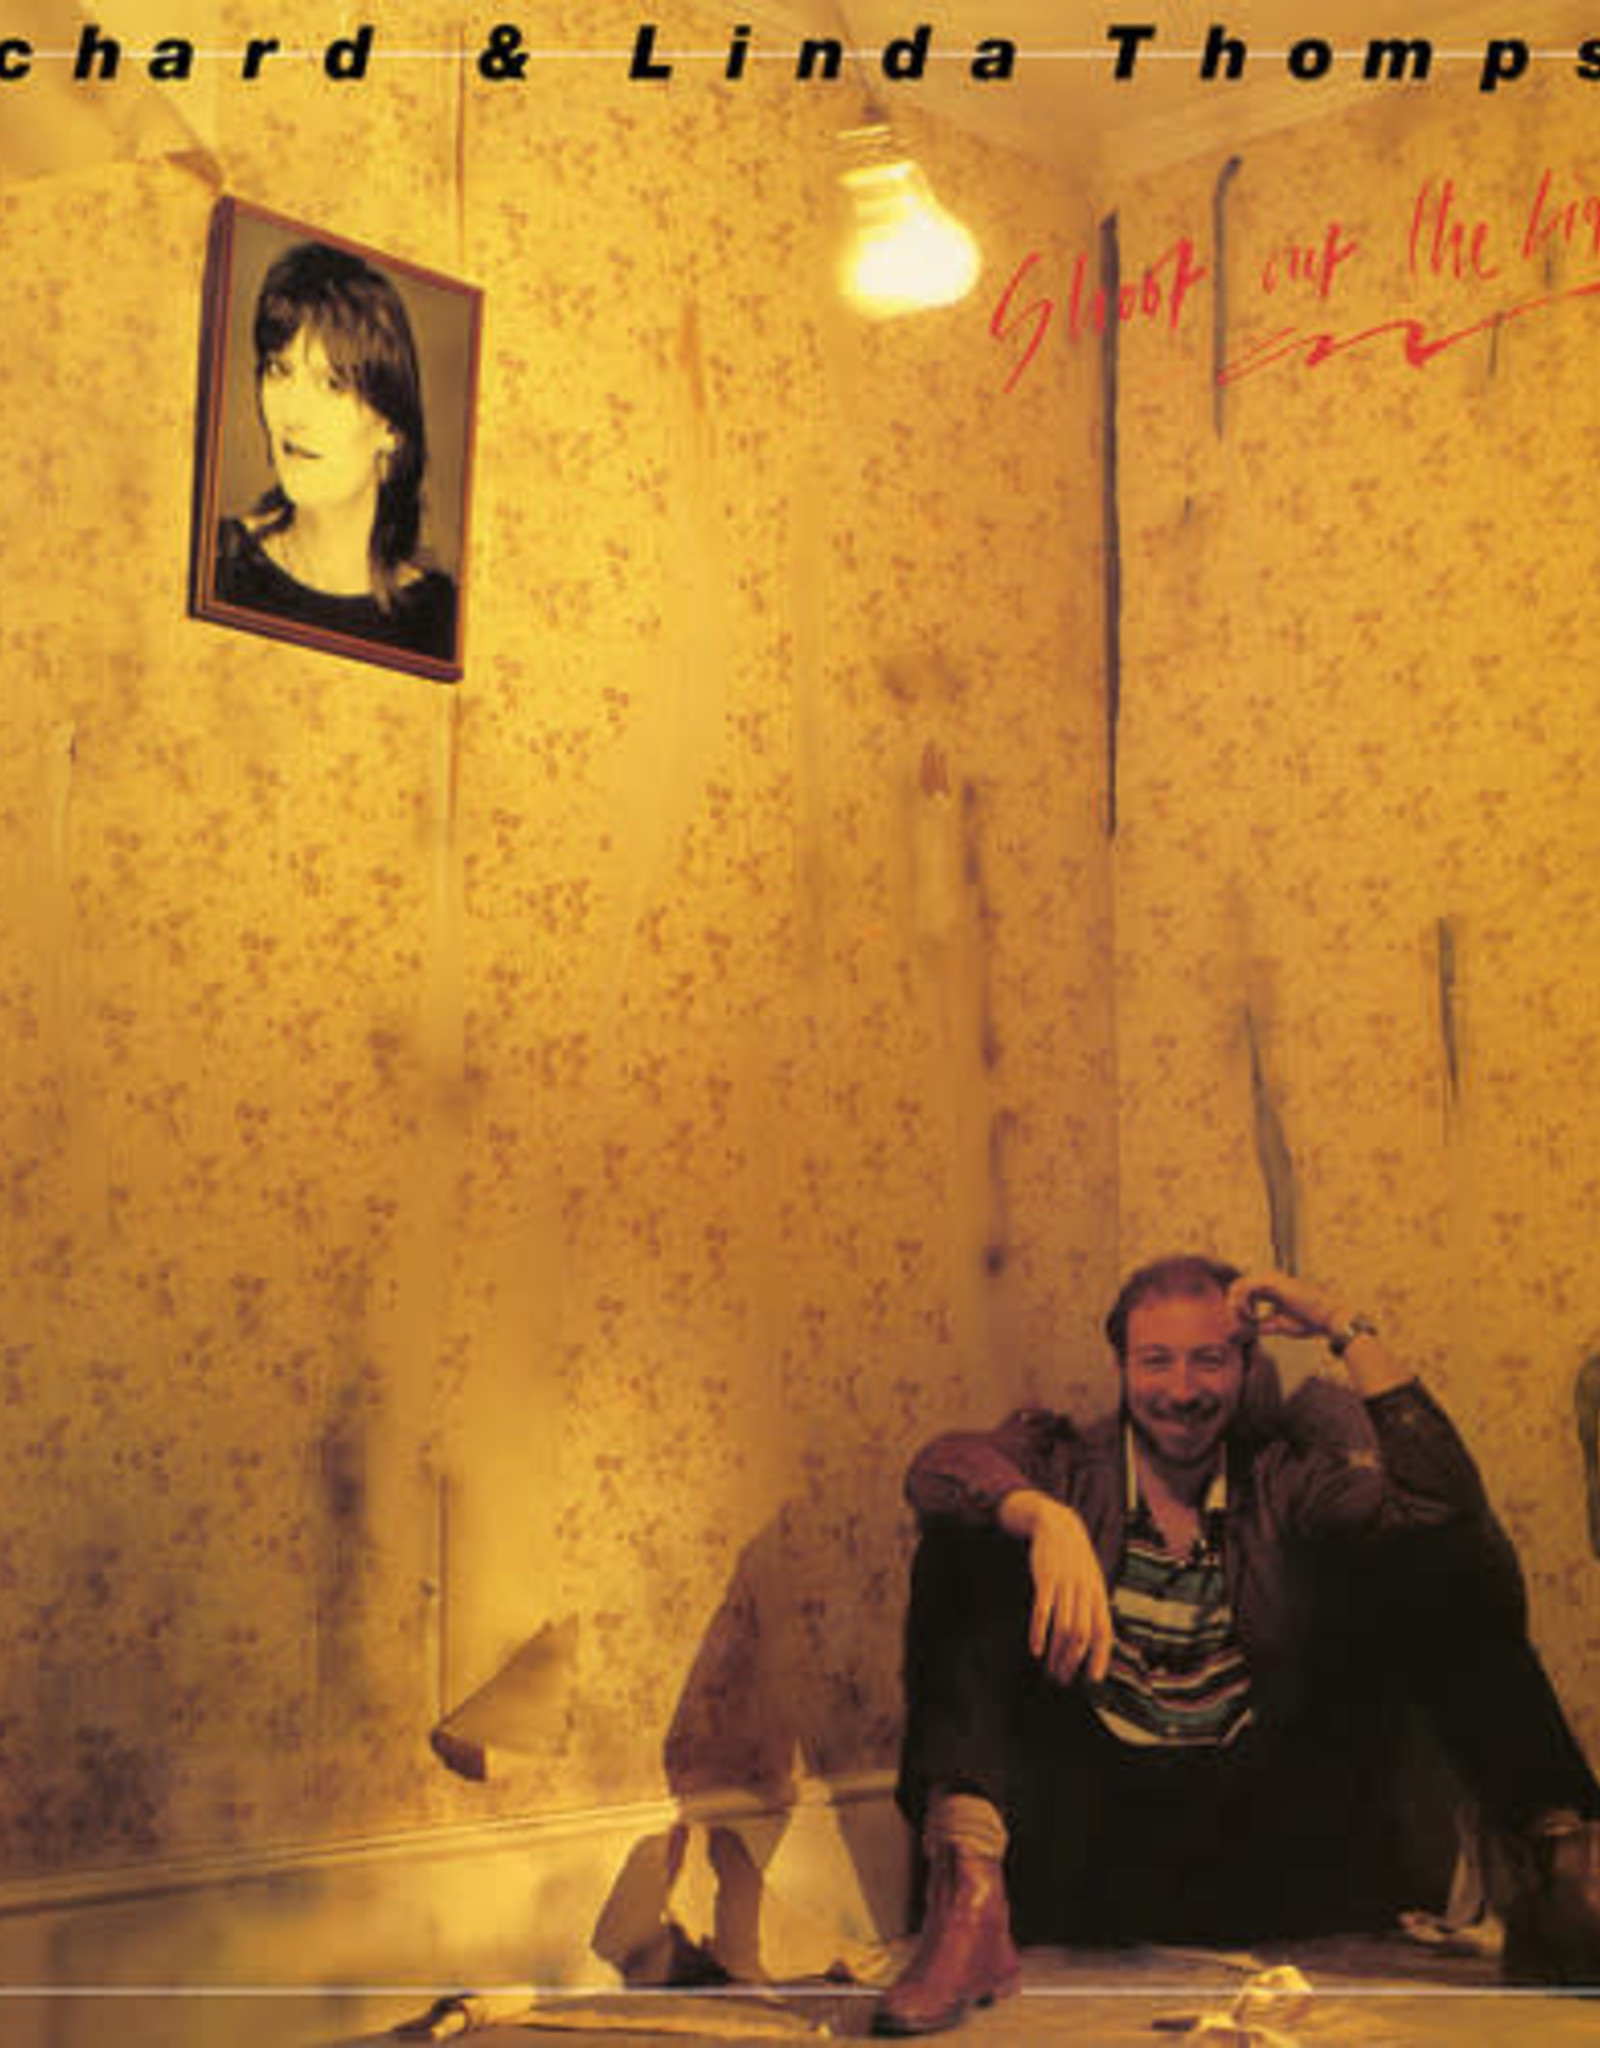 Richard And Linda Thompson - Shoot Out The Lights (180 Gram Vinyl)(Syeor 2018 Exclusive)